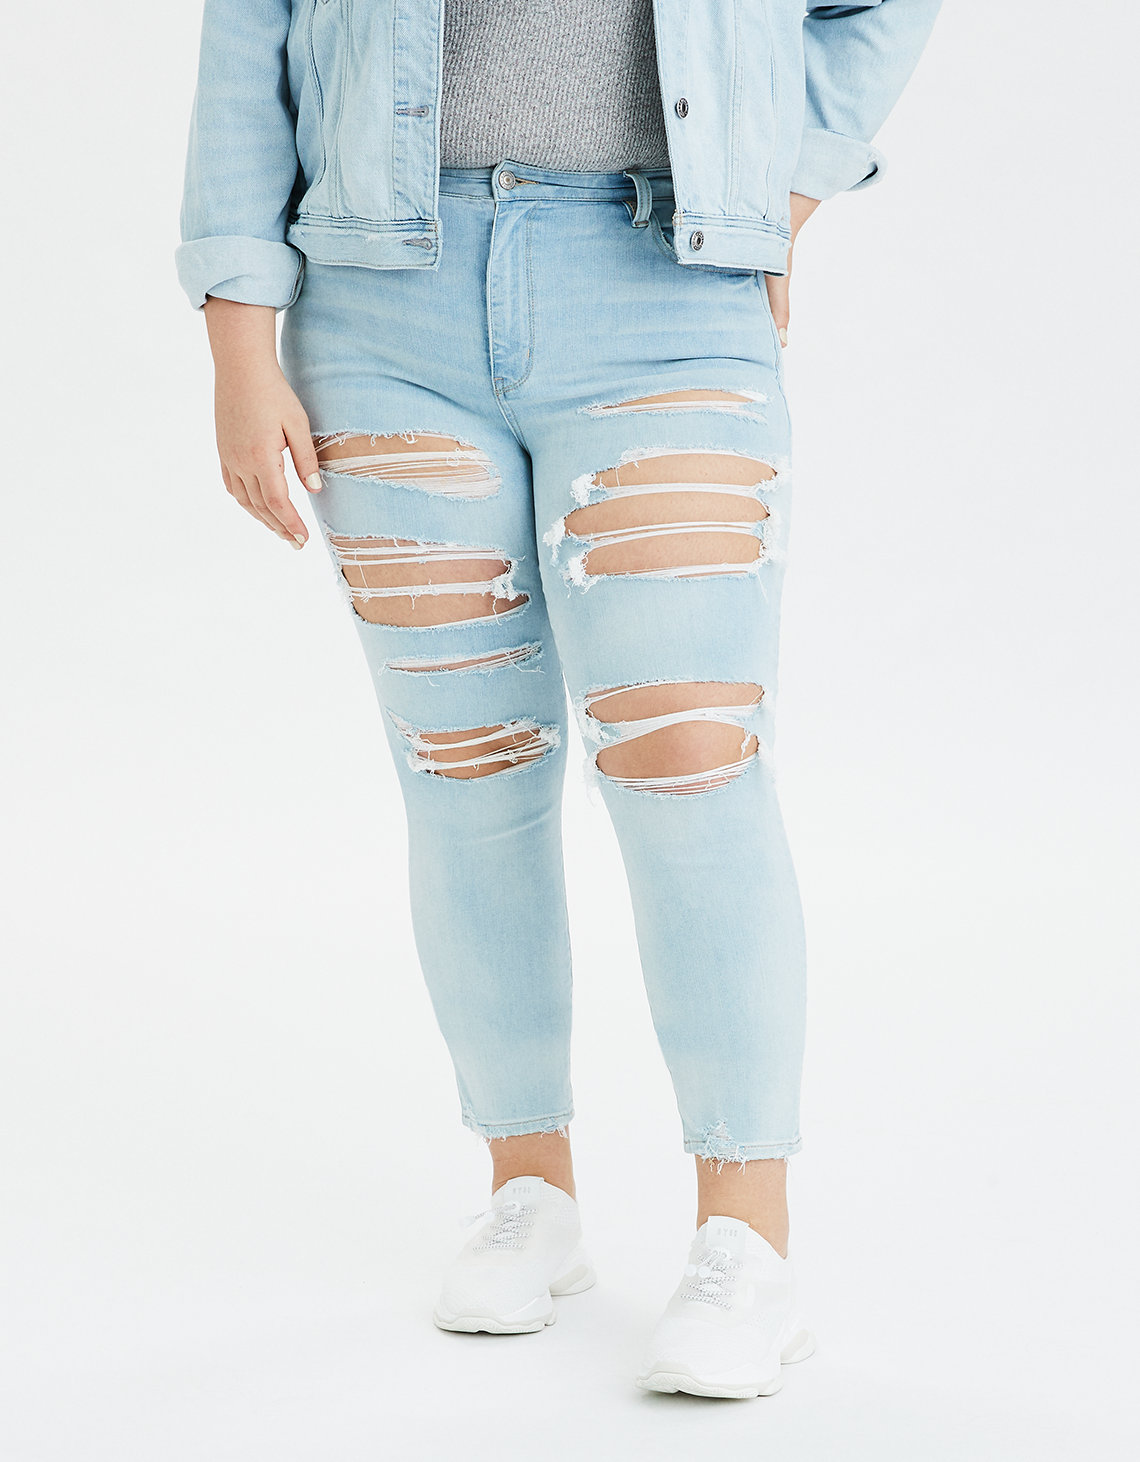 AE 360 Ne(X)t Level Super High-Waisted Jegging Crop